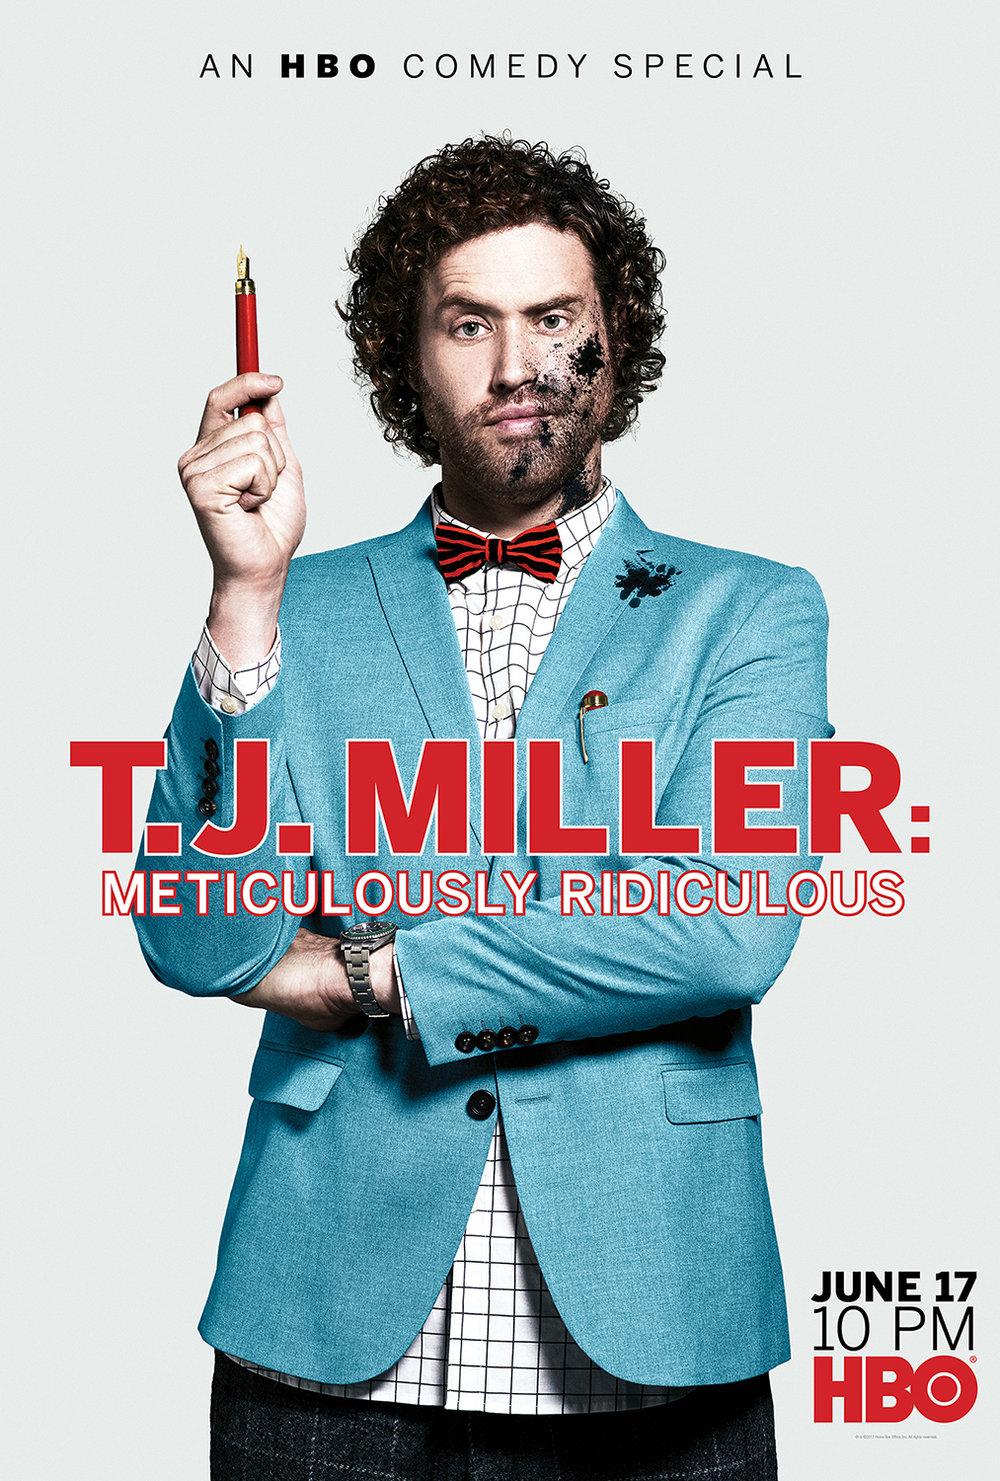 HBO Comedy Speical Meticulously Ridiculous by TJ Miller and HBO